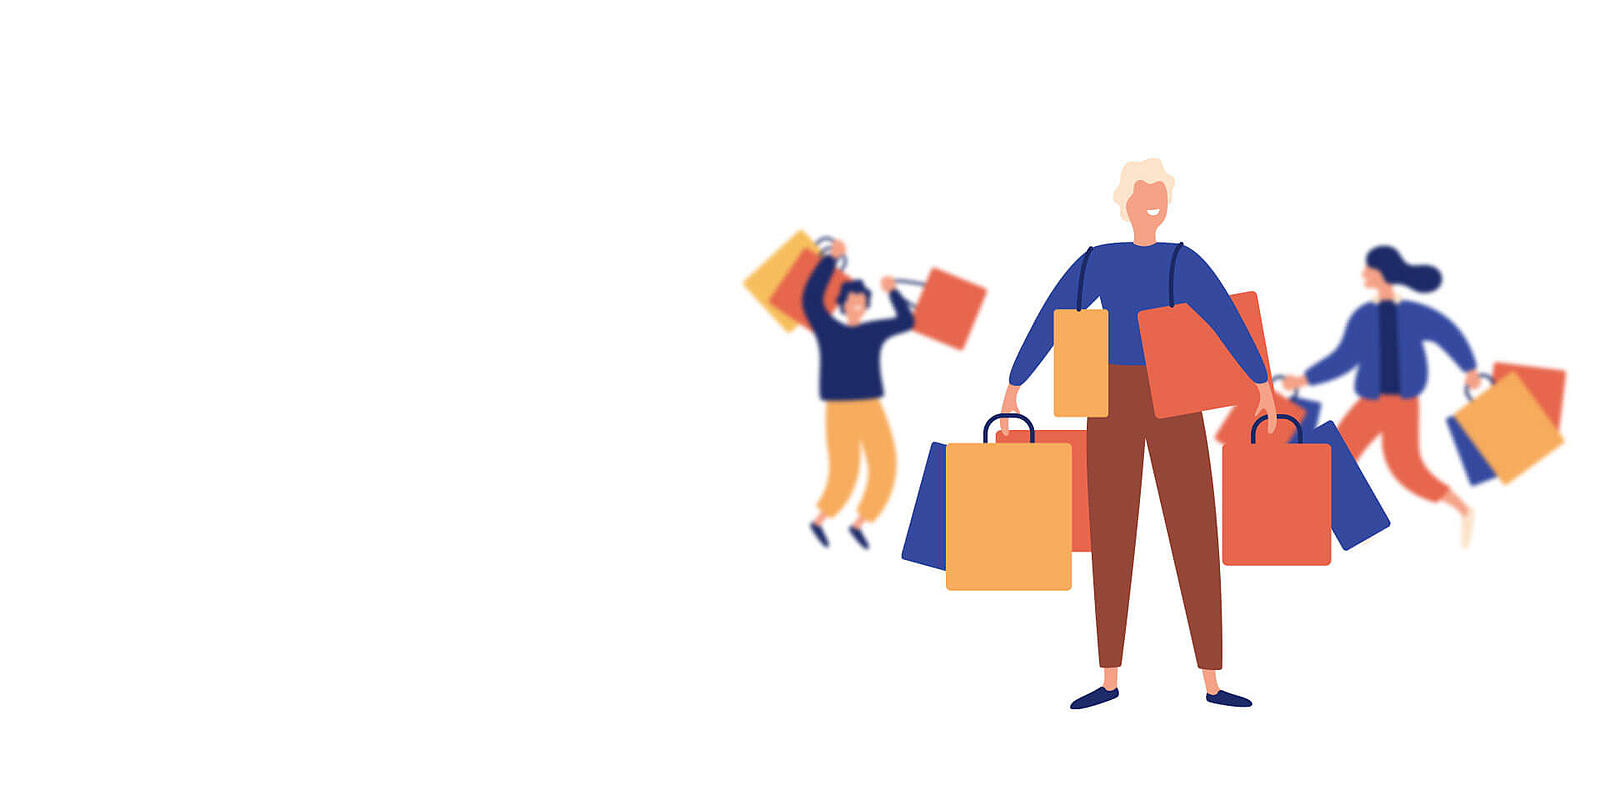 15 customer experience statistics that retailers cannot afford to ignore